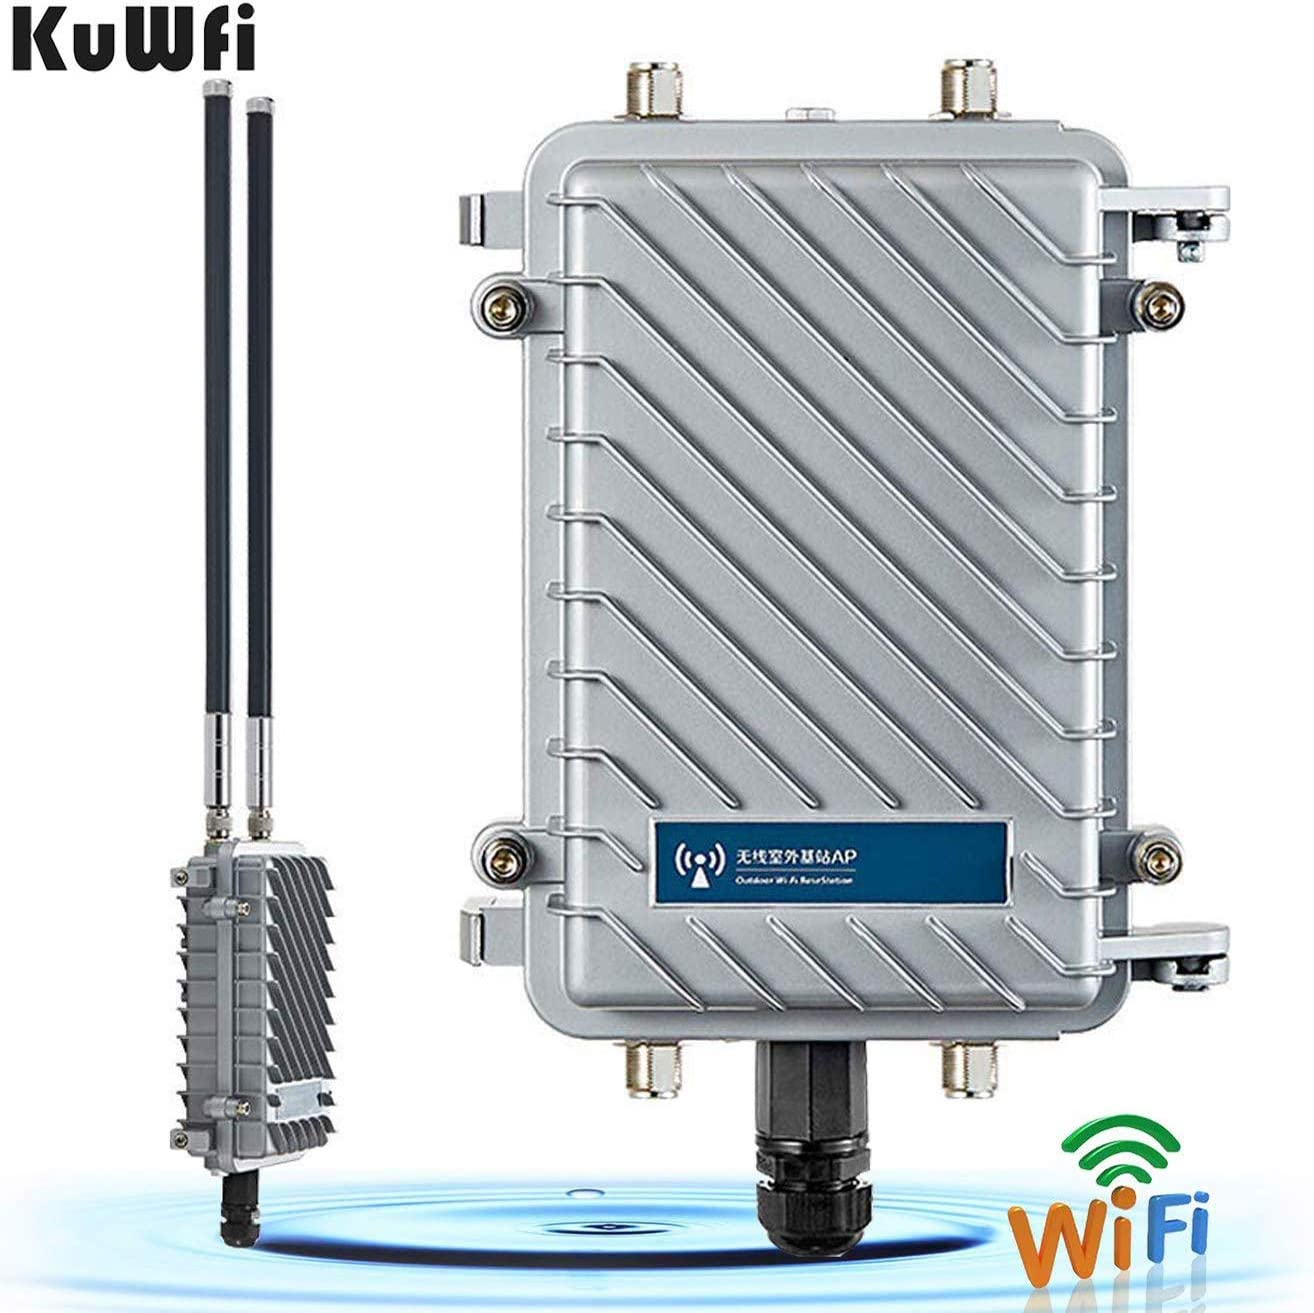 KuWFi High Performance 300Mpbs 2.4G Outdoor CPE/AP Waterproof Outdoor Base Station Access Point with 18dBi Panel Antenna Support Wireless AP/Gateway/WiFi Repeater/Bridge/WISP